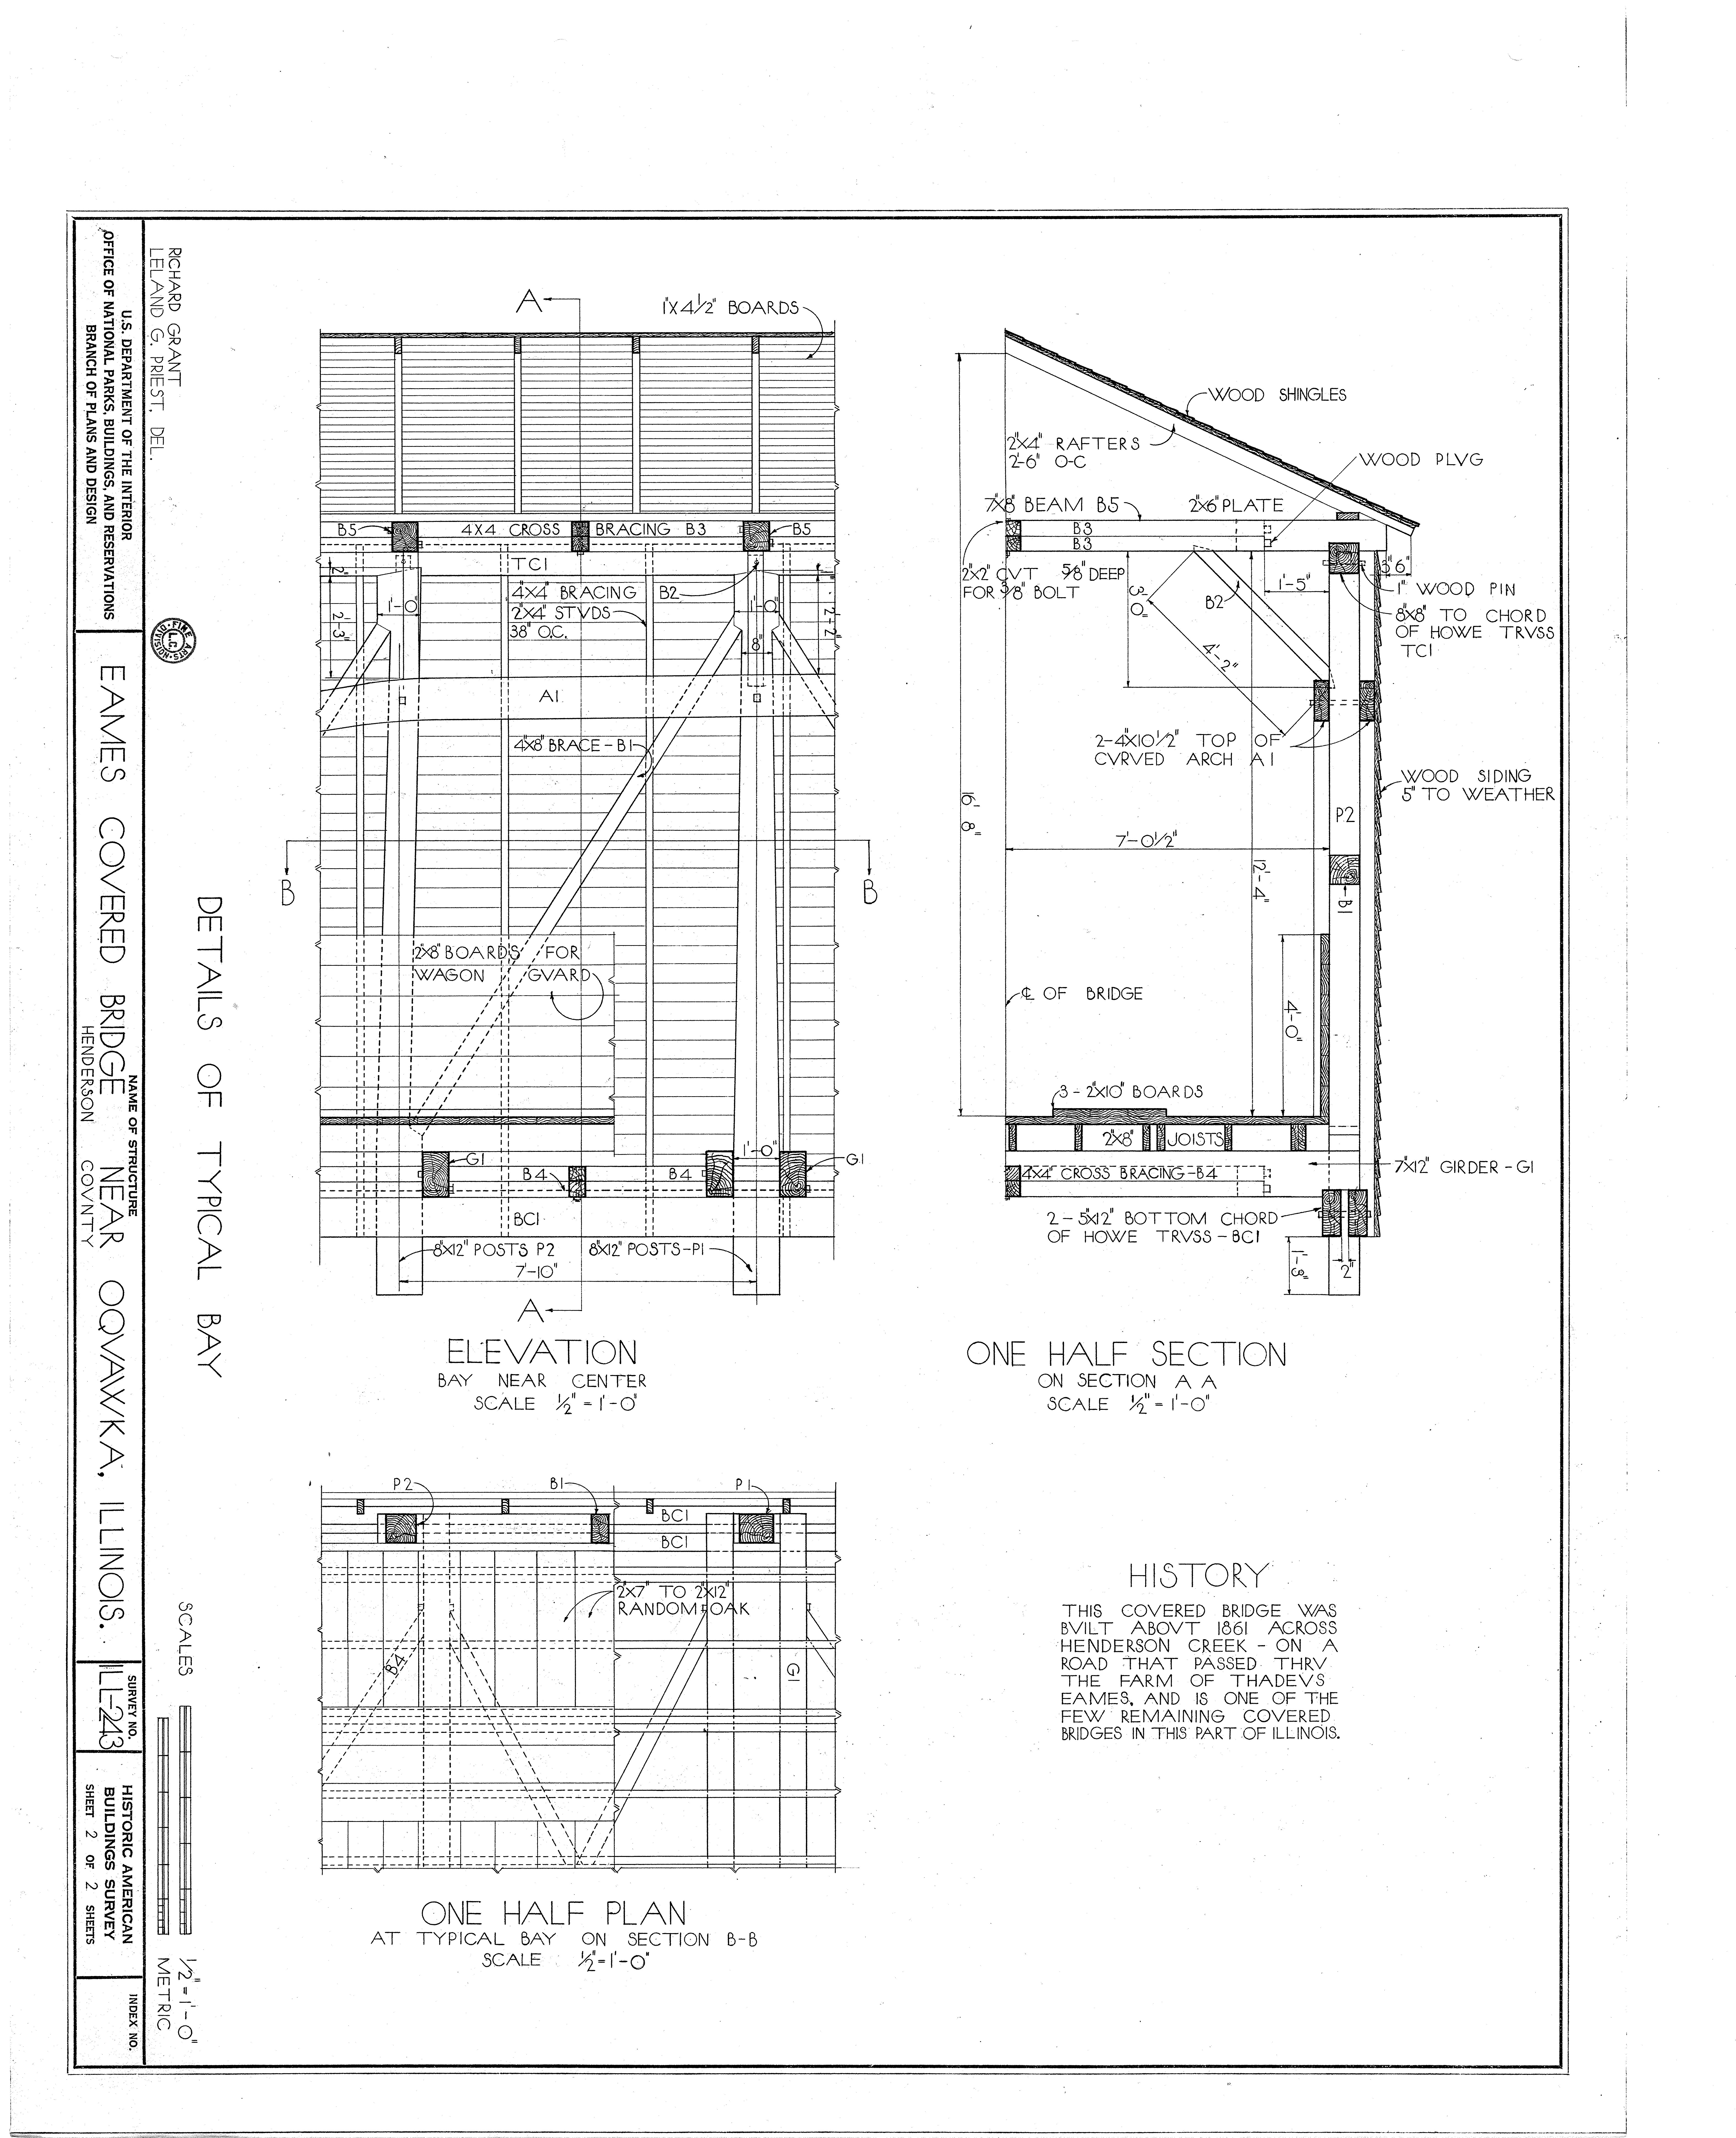 Elevation Plan Details : File details of typical bay elevation one half section